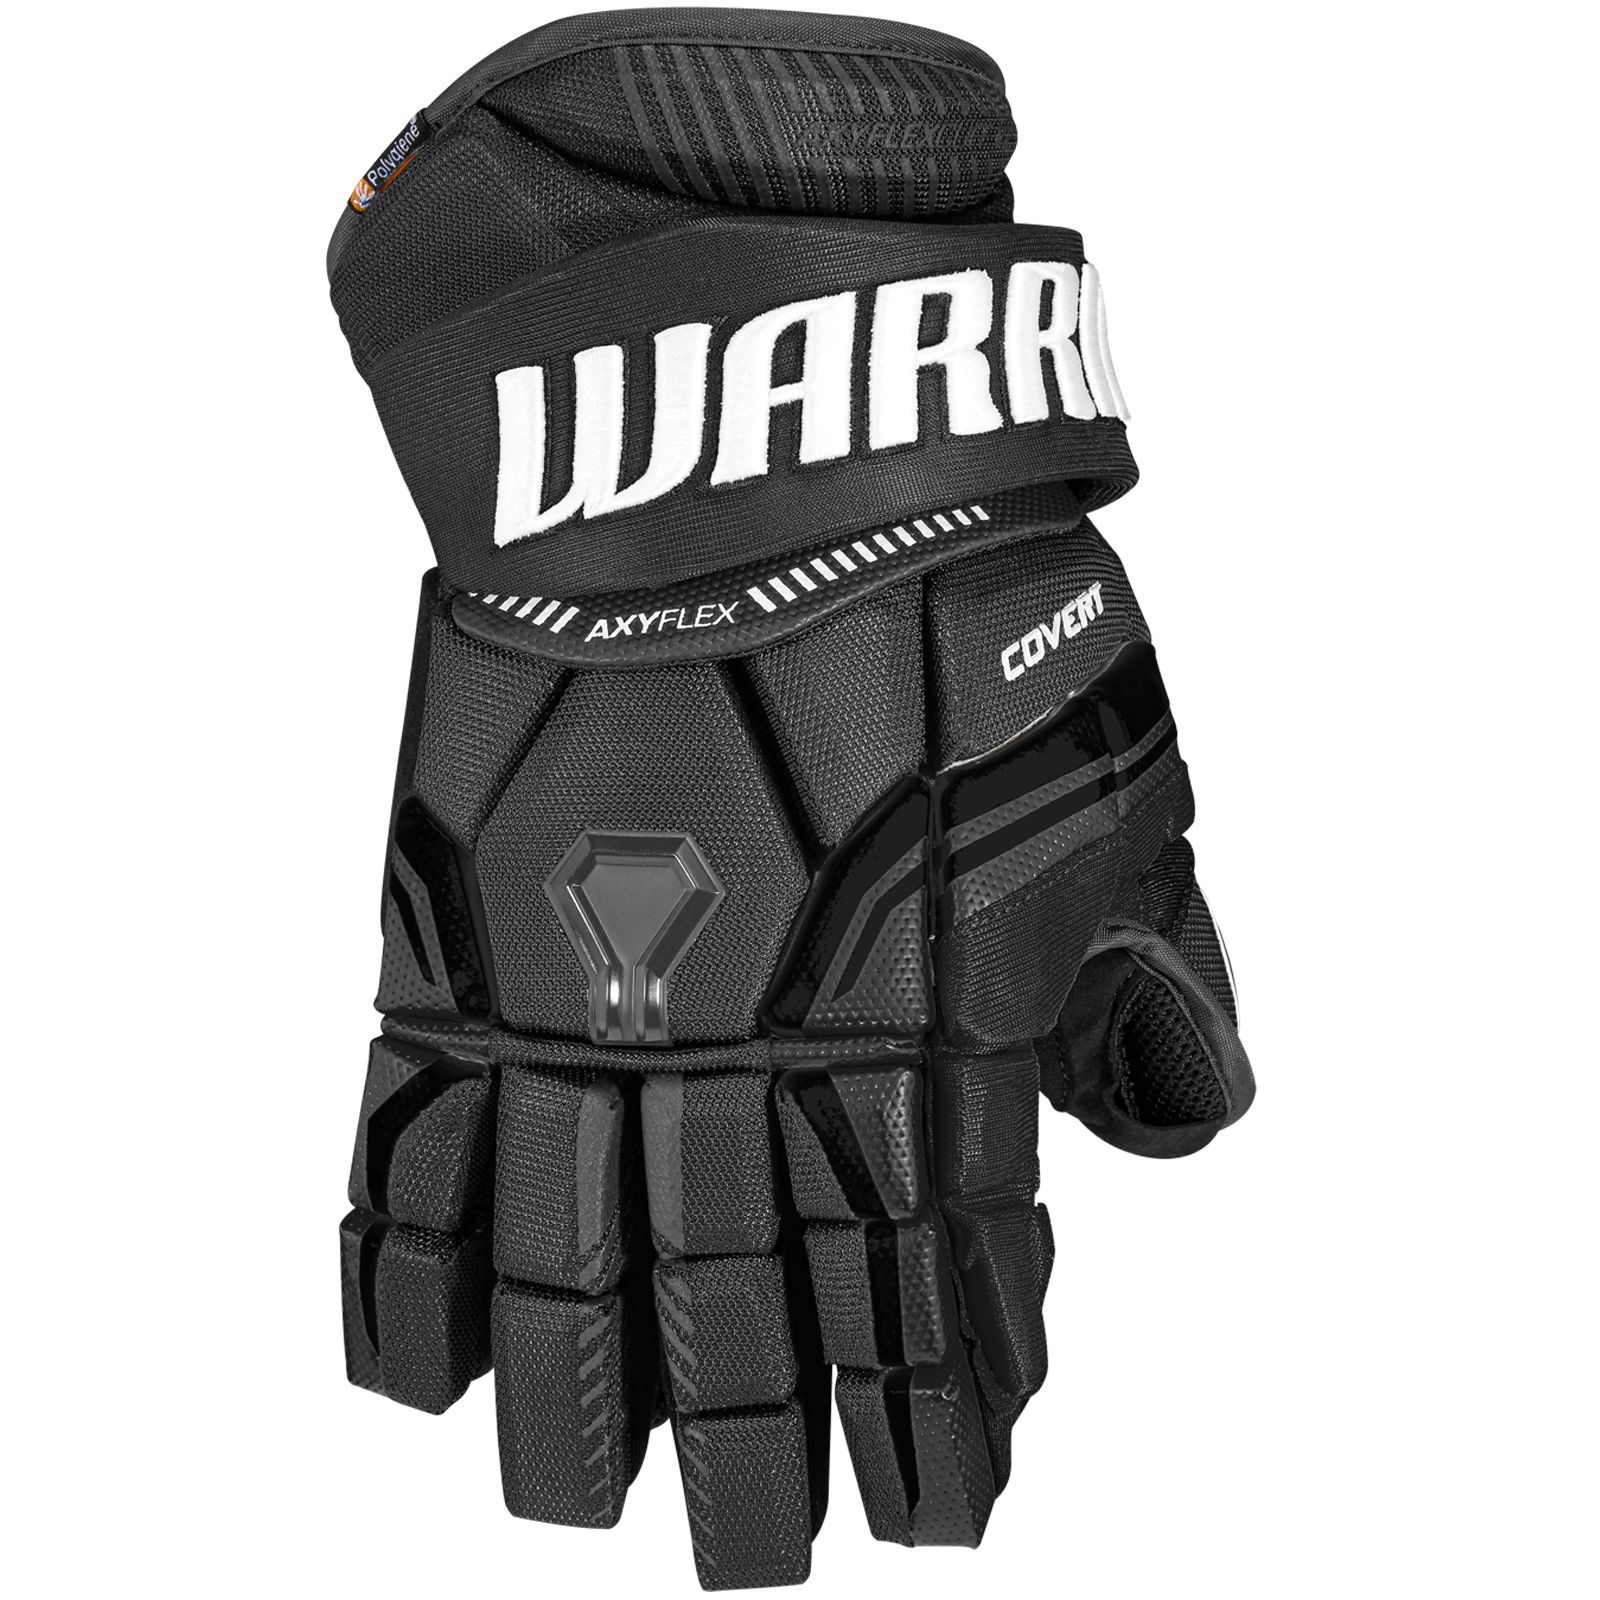 WARRIOR COVERT QRE 10 HANSKAT 1